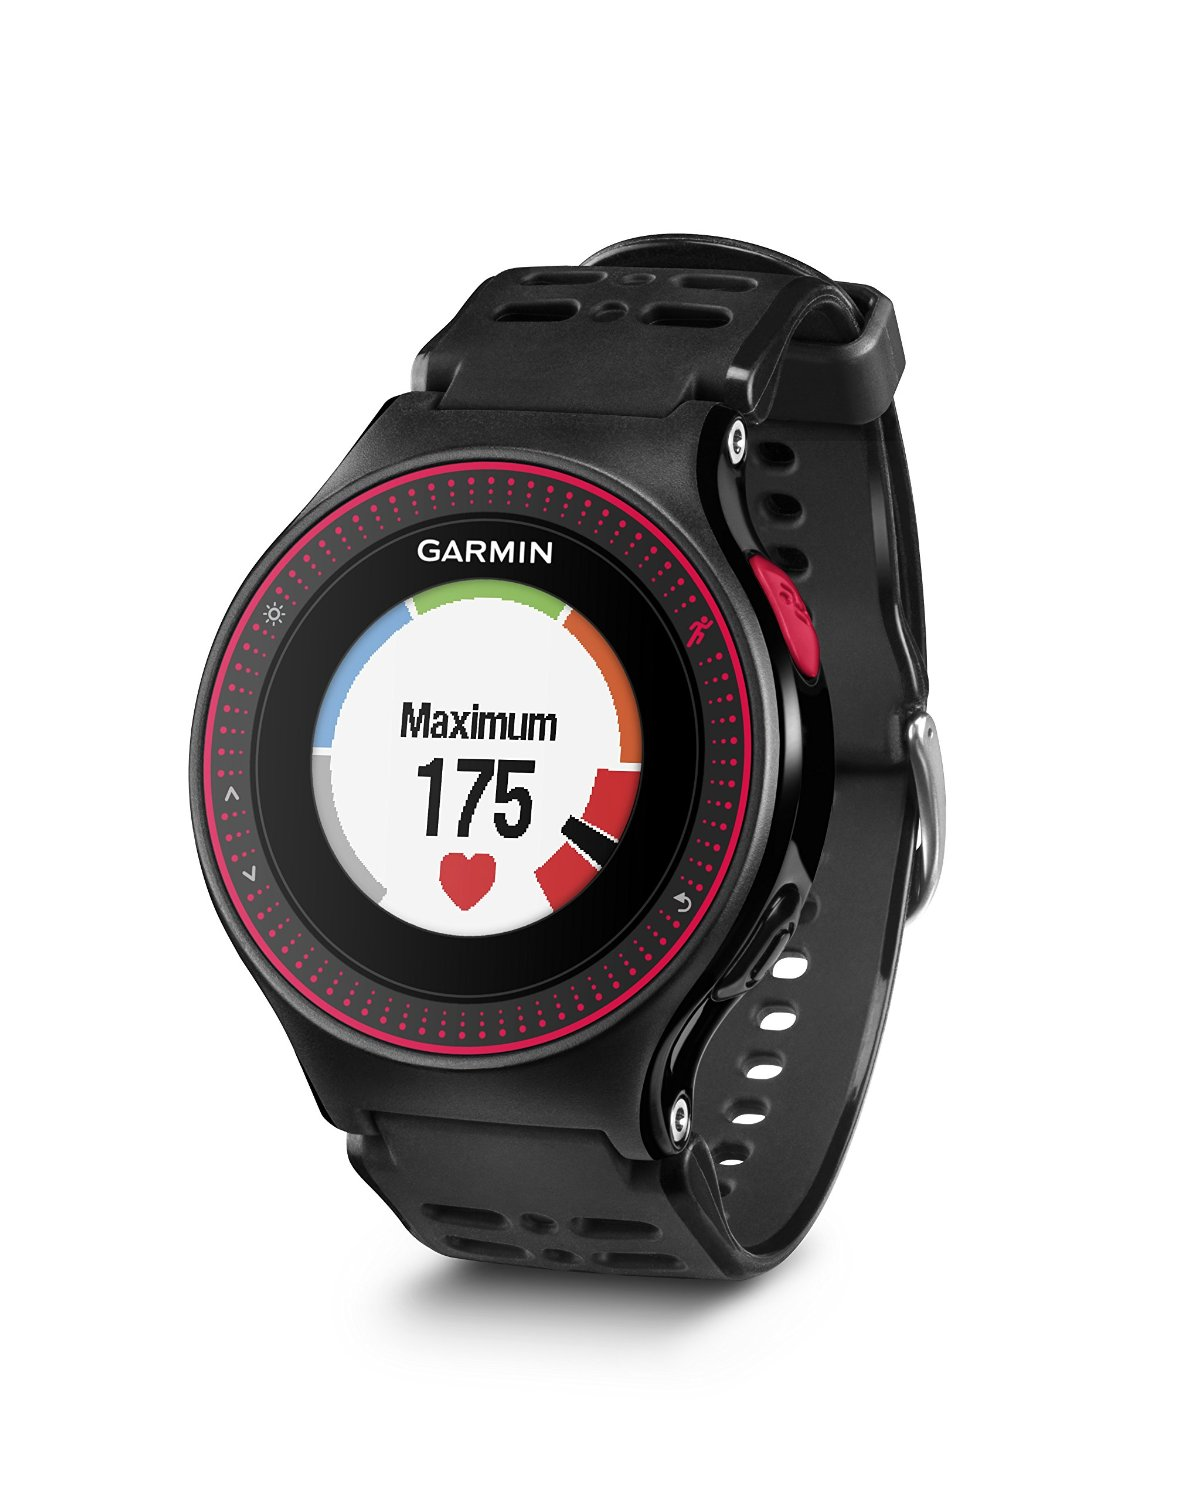 Track your workouts as we head into the spring with the [Garmin Forerunner 225 watch](https://www.amazon.com/gp/product/B00XKRWTUE?tag=toolstoysdeals-20).